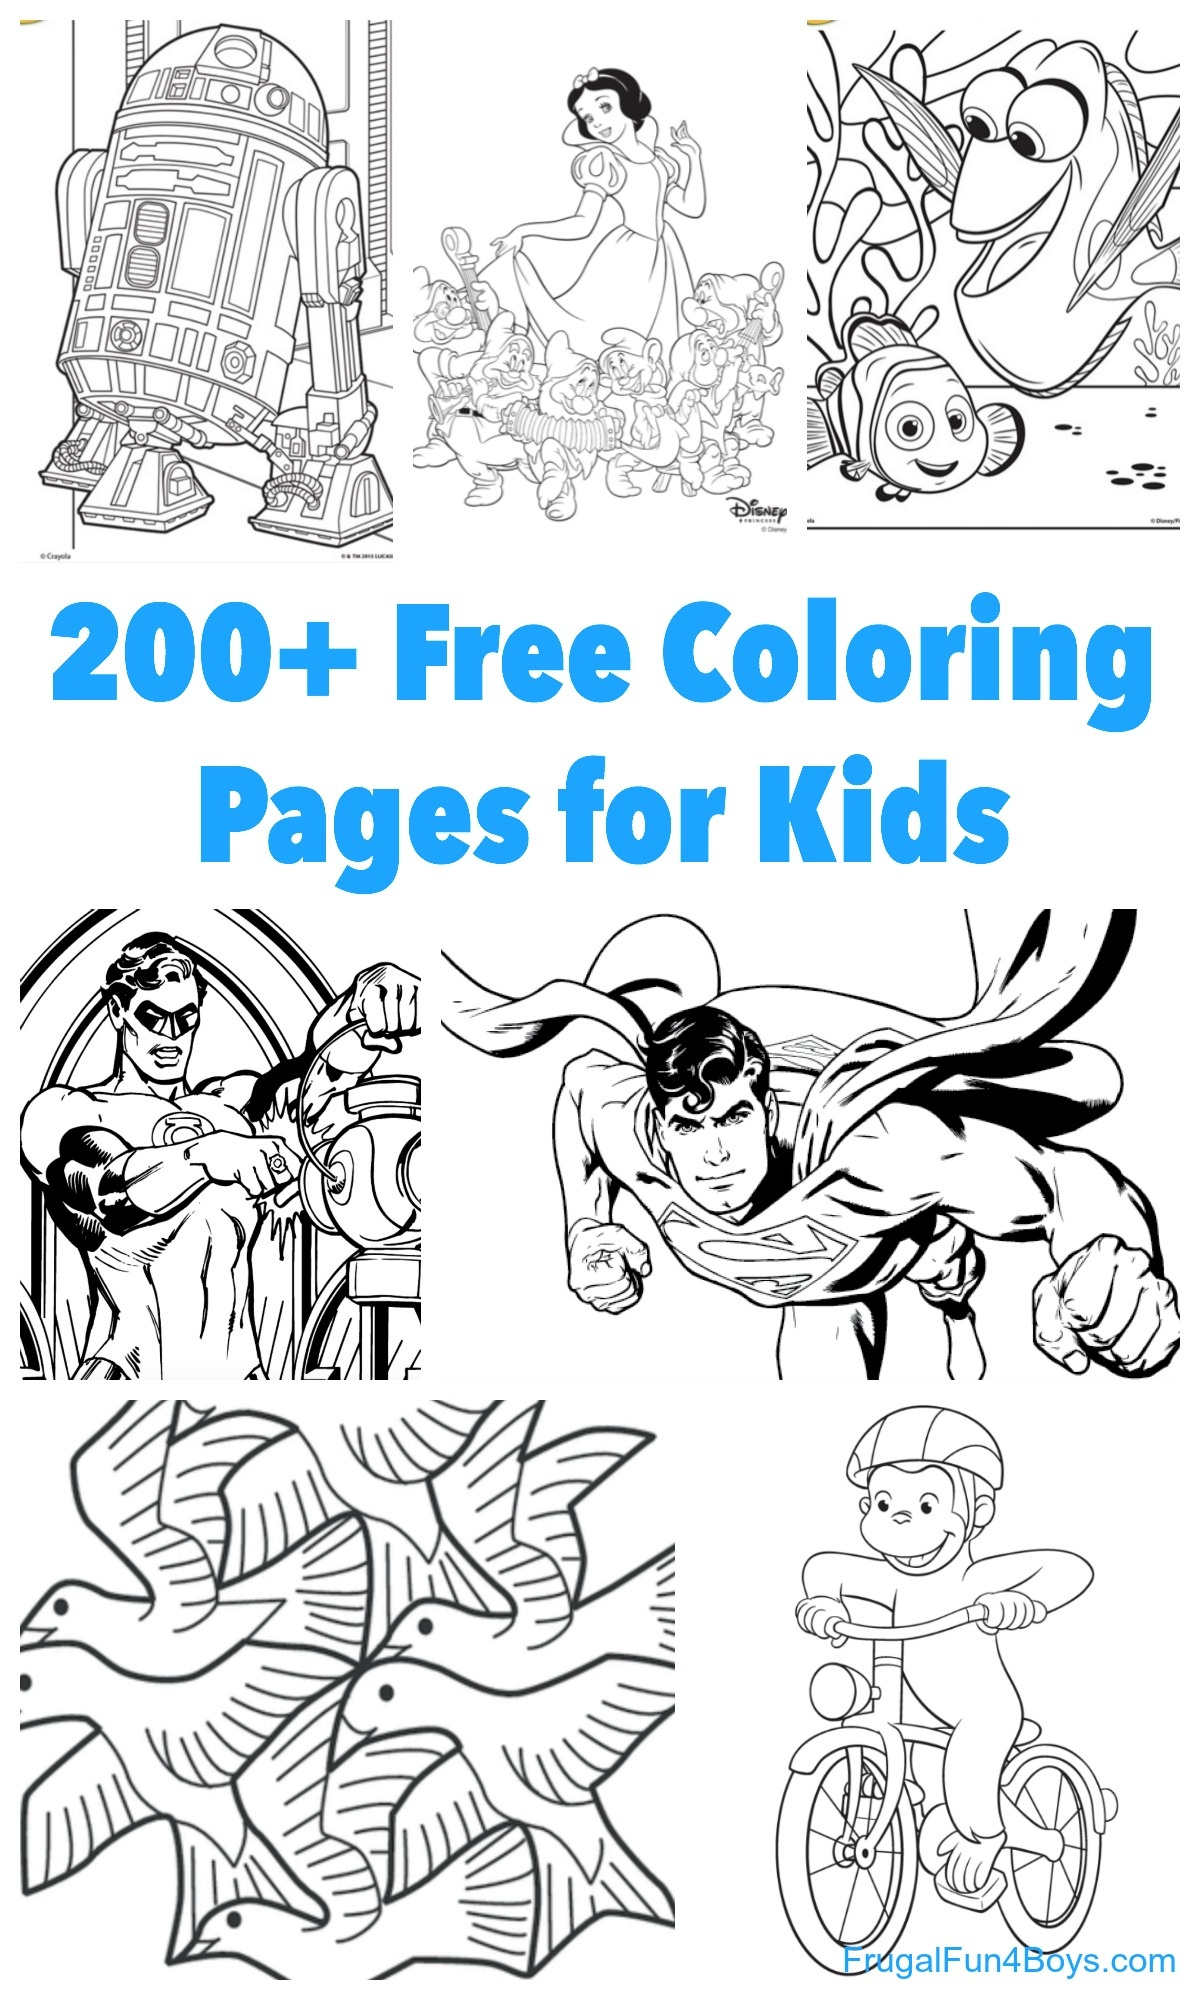 200+ Printable Coloring Pages For Kids - Frugal Fun For Boys And Girls - Free Printable Coloring Pages For 2 Year Olds